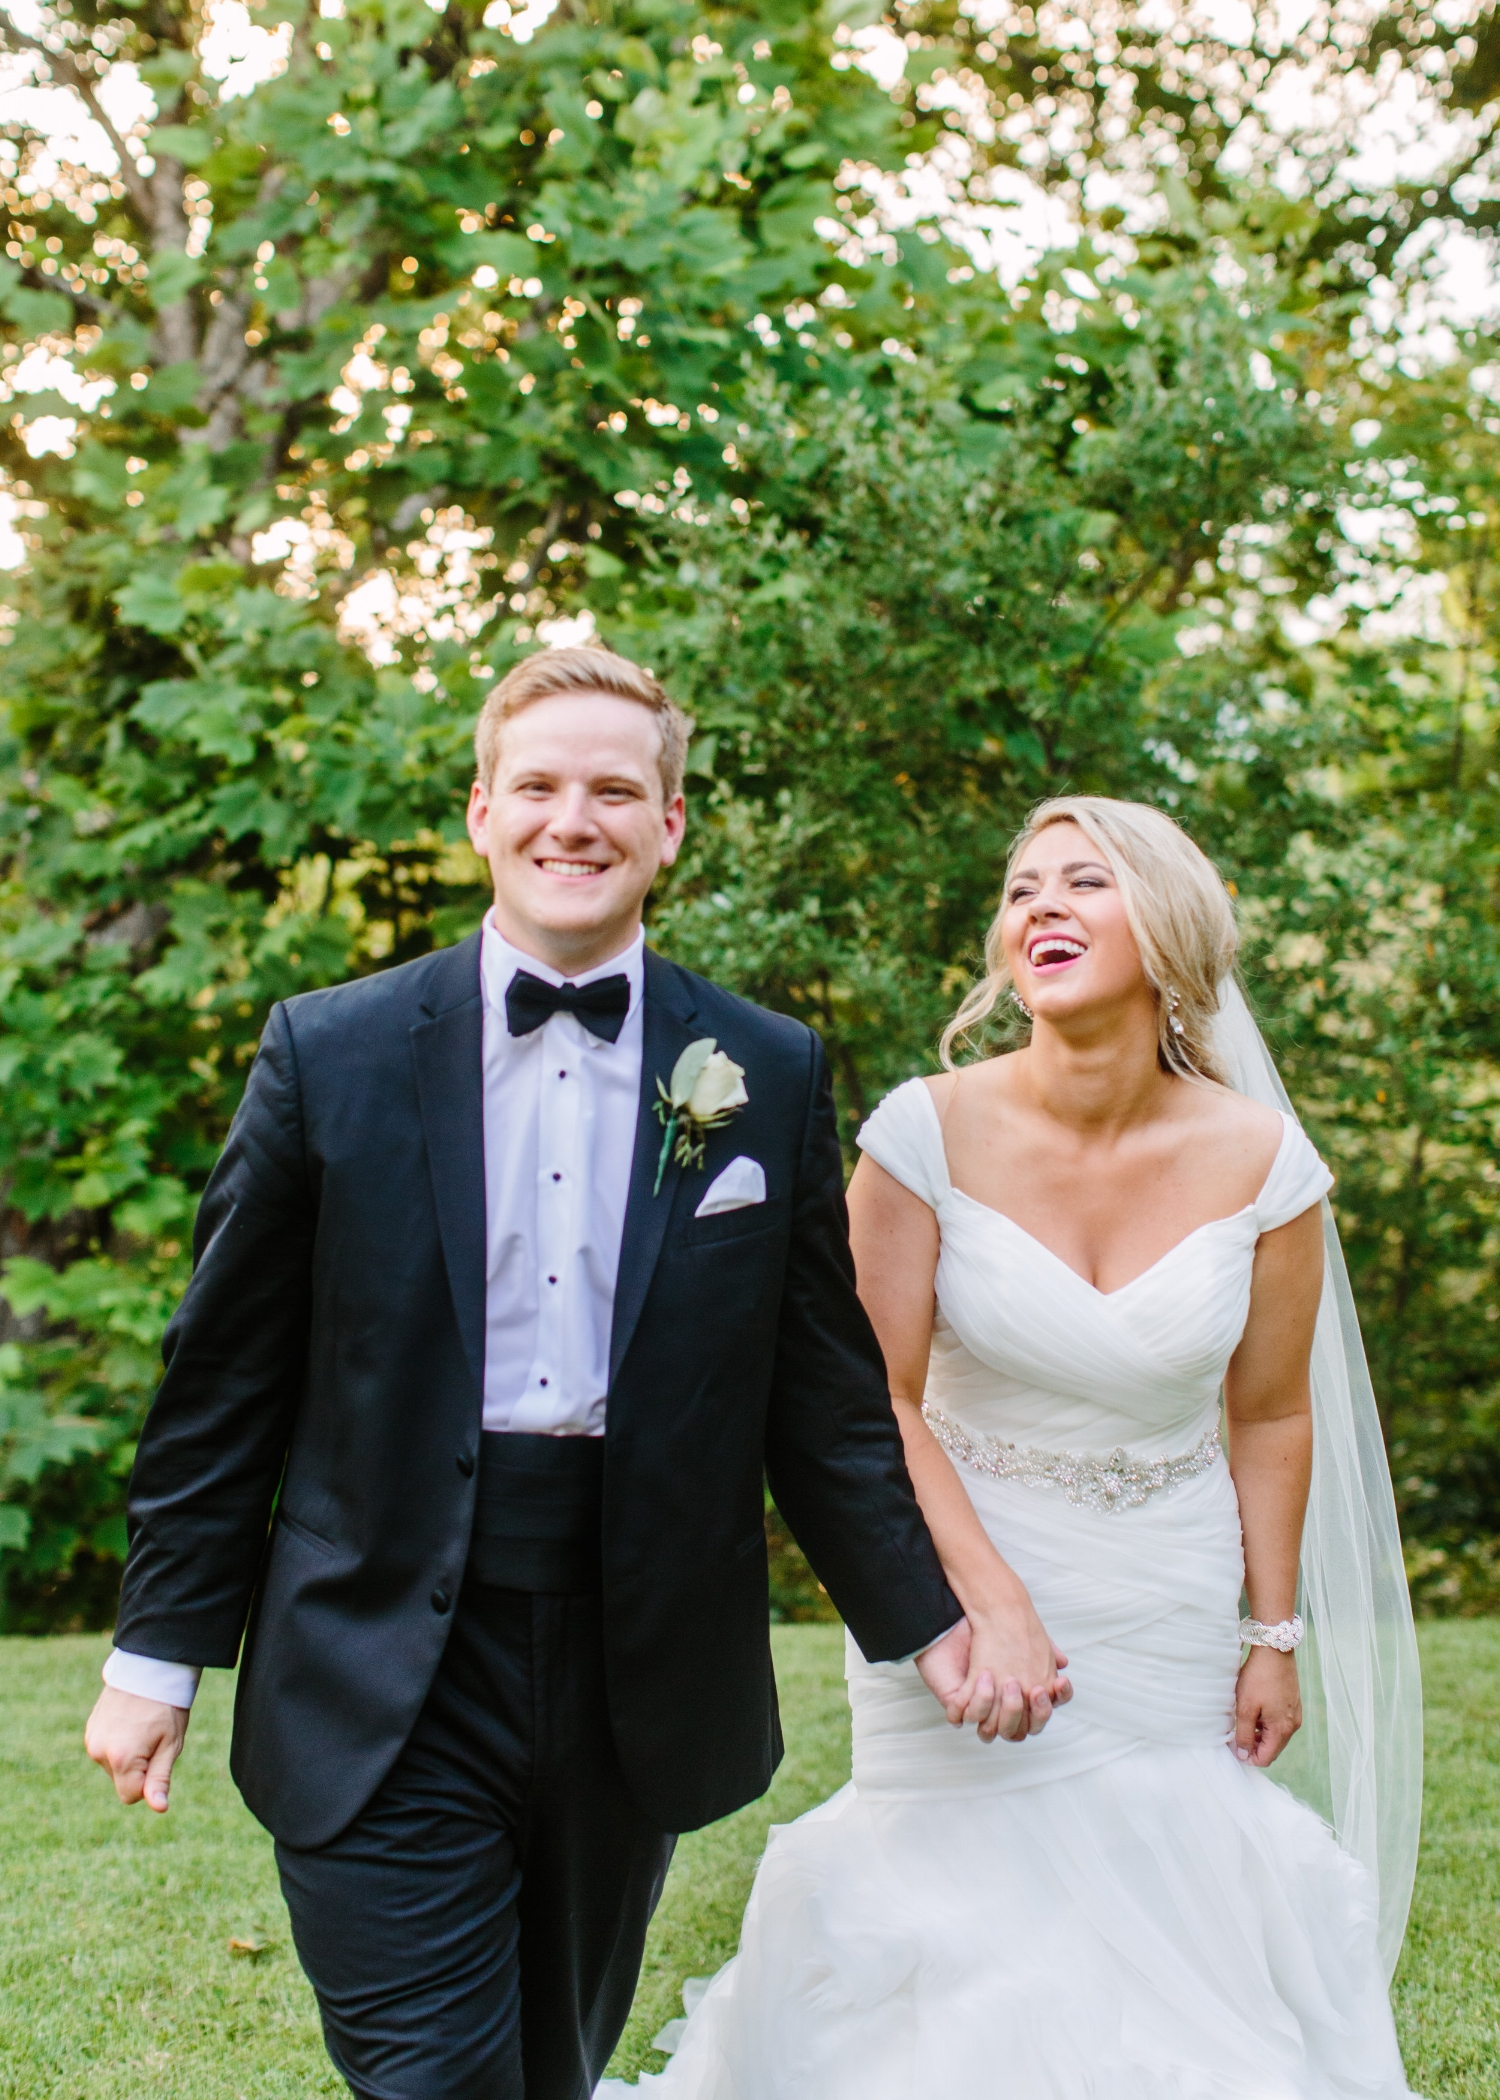 Justin & Chelsea - Classic Outdoor Wedding